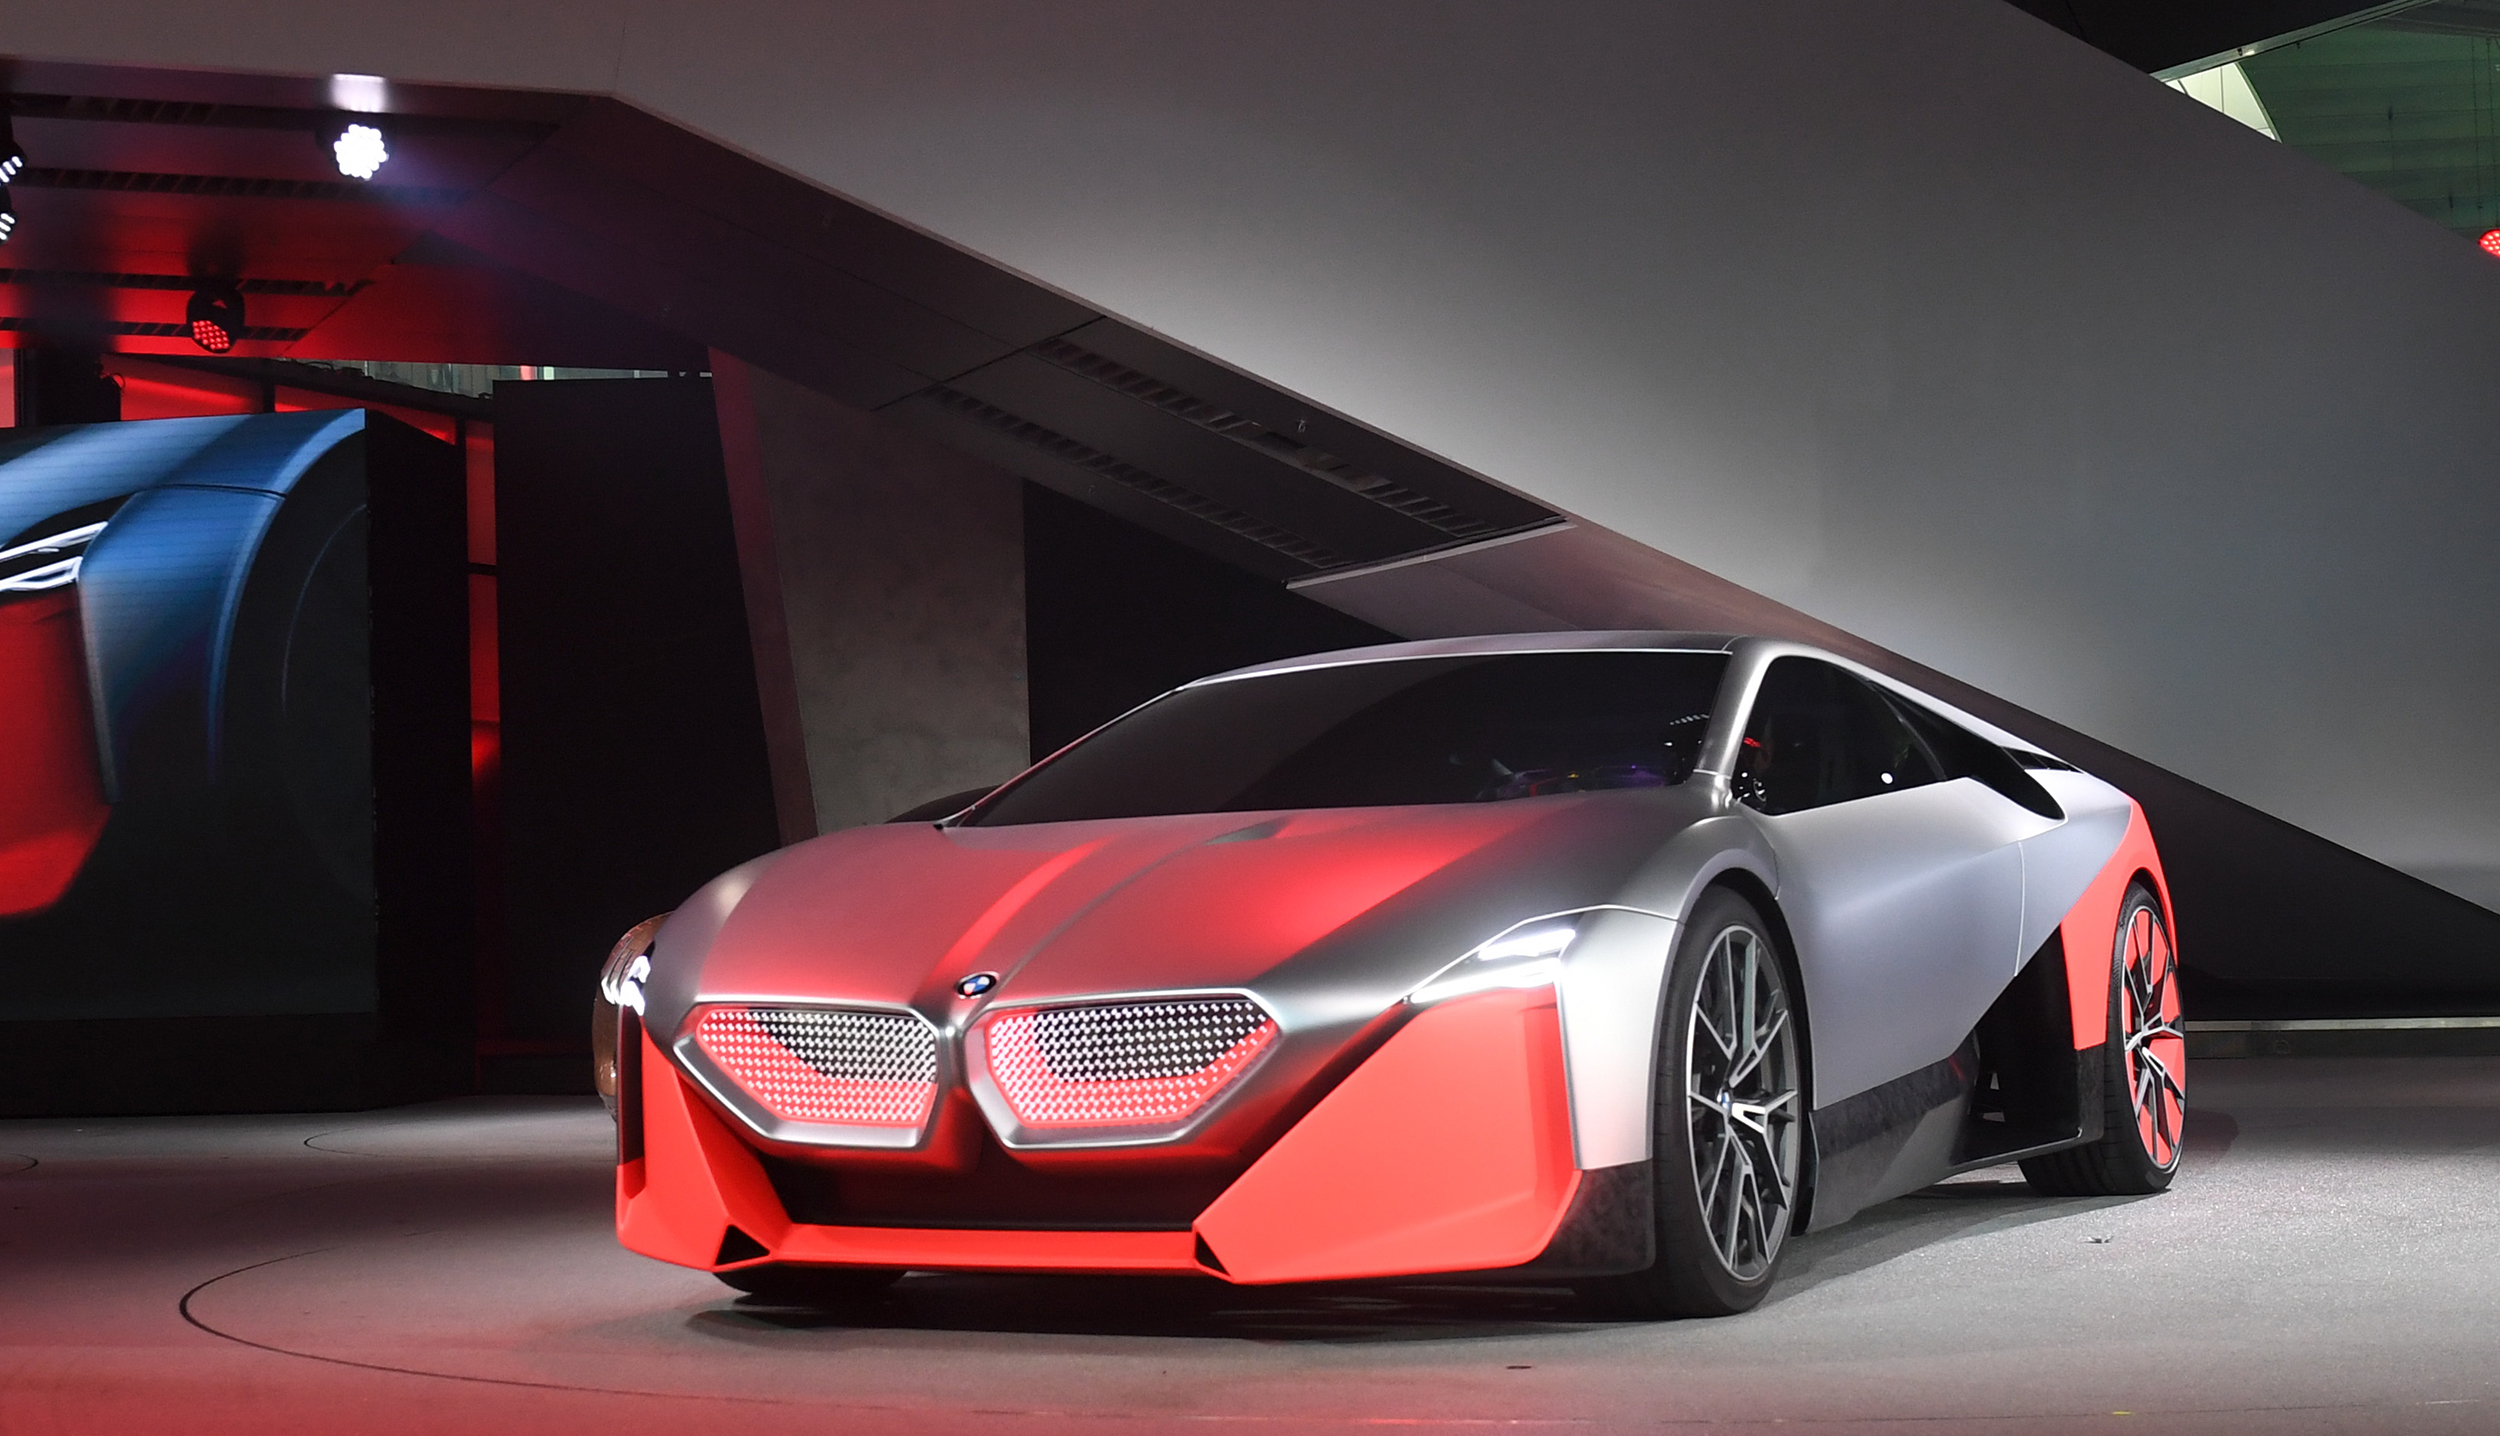 Bmw Doubles Down On Plug Ins And Battery Powered Cars Saying The Future Of Sporty Driving Is Electric